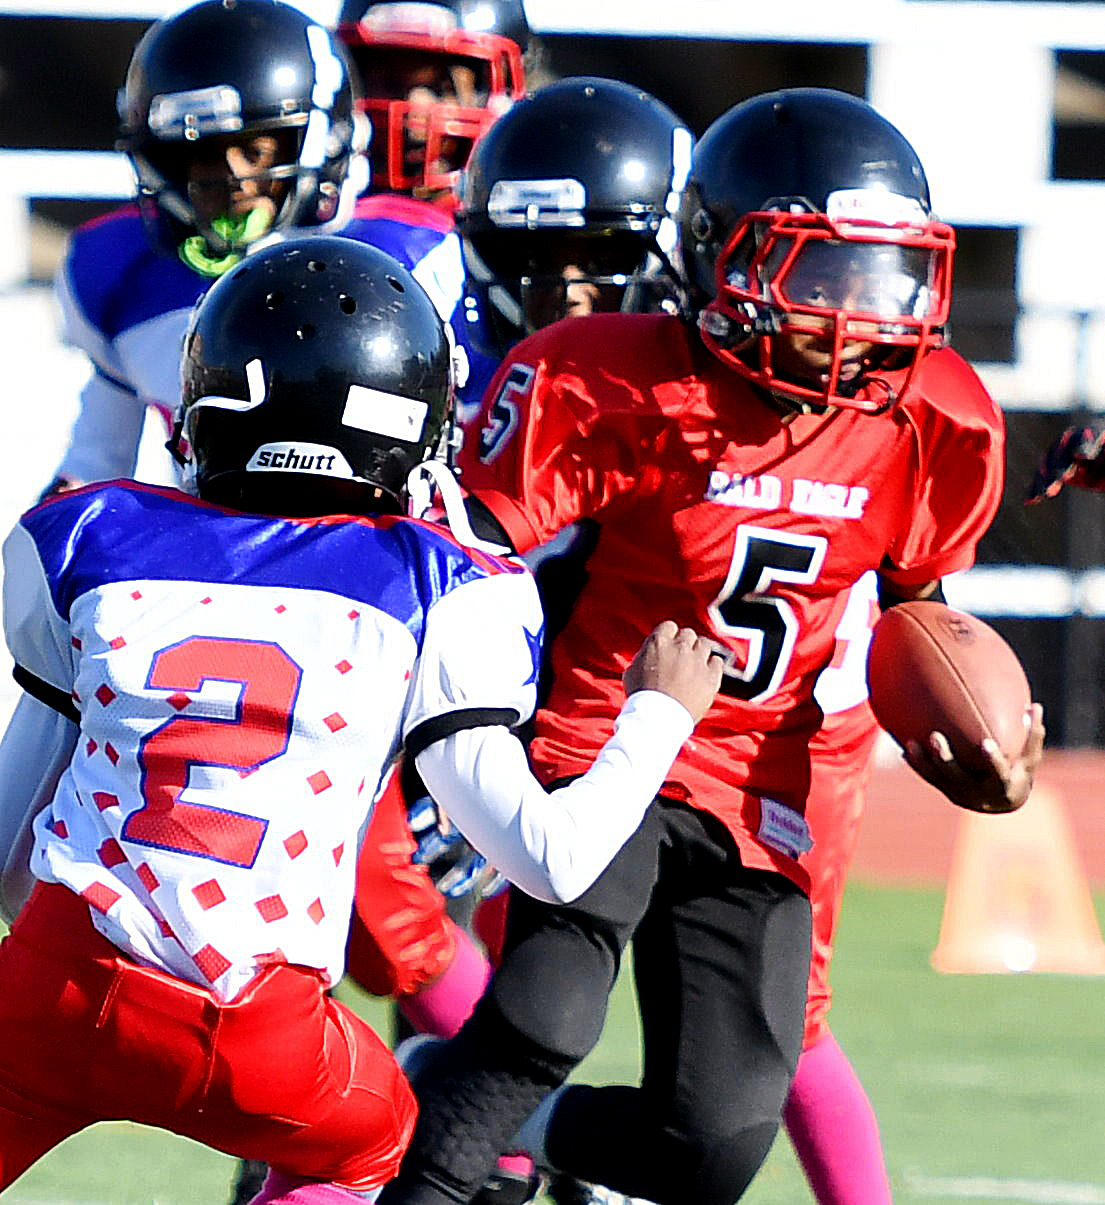 Rita Bright defenders converge on a Bald Eagle ball carrier during a DPR Youth Tackle Football League 10U game at Roosevelt High School Stadium in northwest D.C. on Saturday, Oct. 29. Bald Eagle defeated Rita Bright 25-21. /Photo by John E. De Freitas